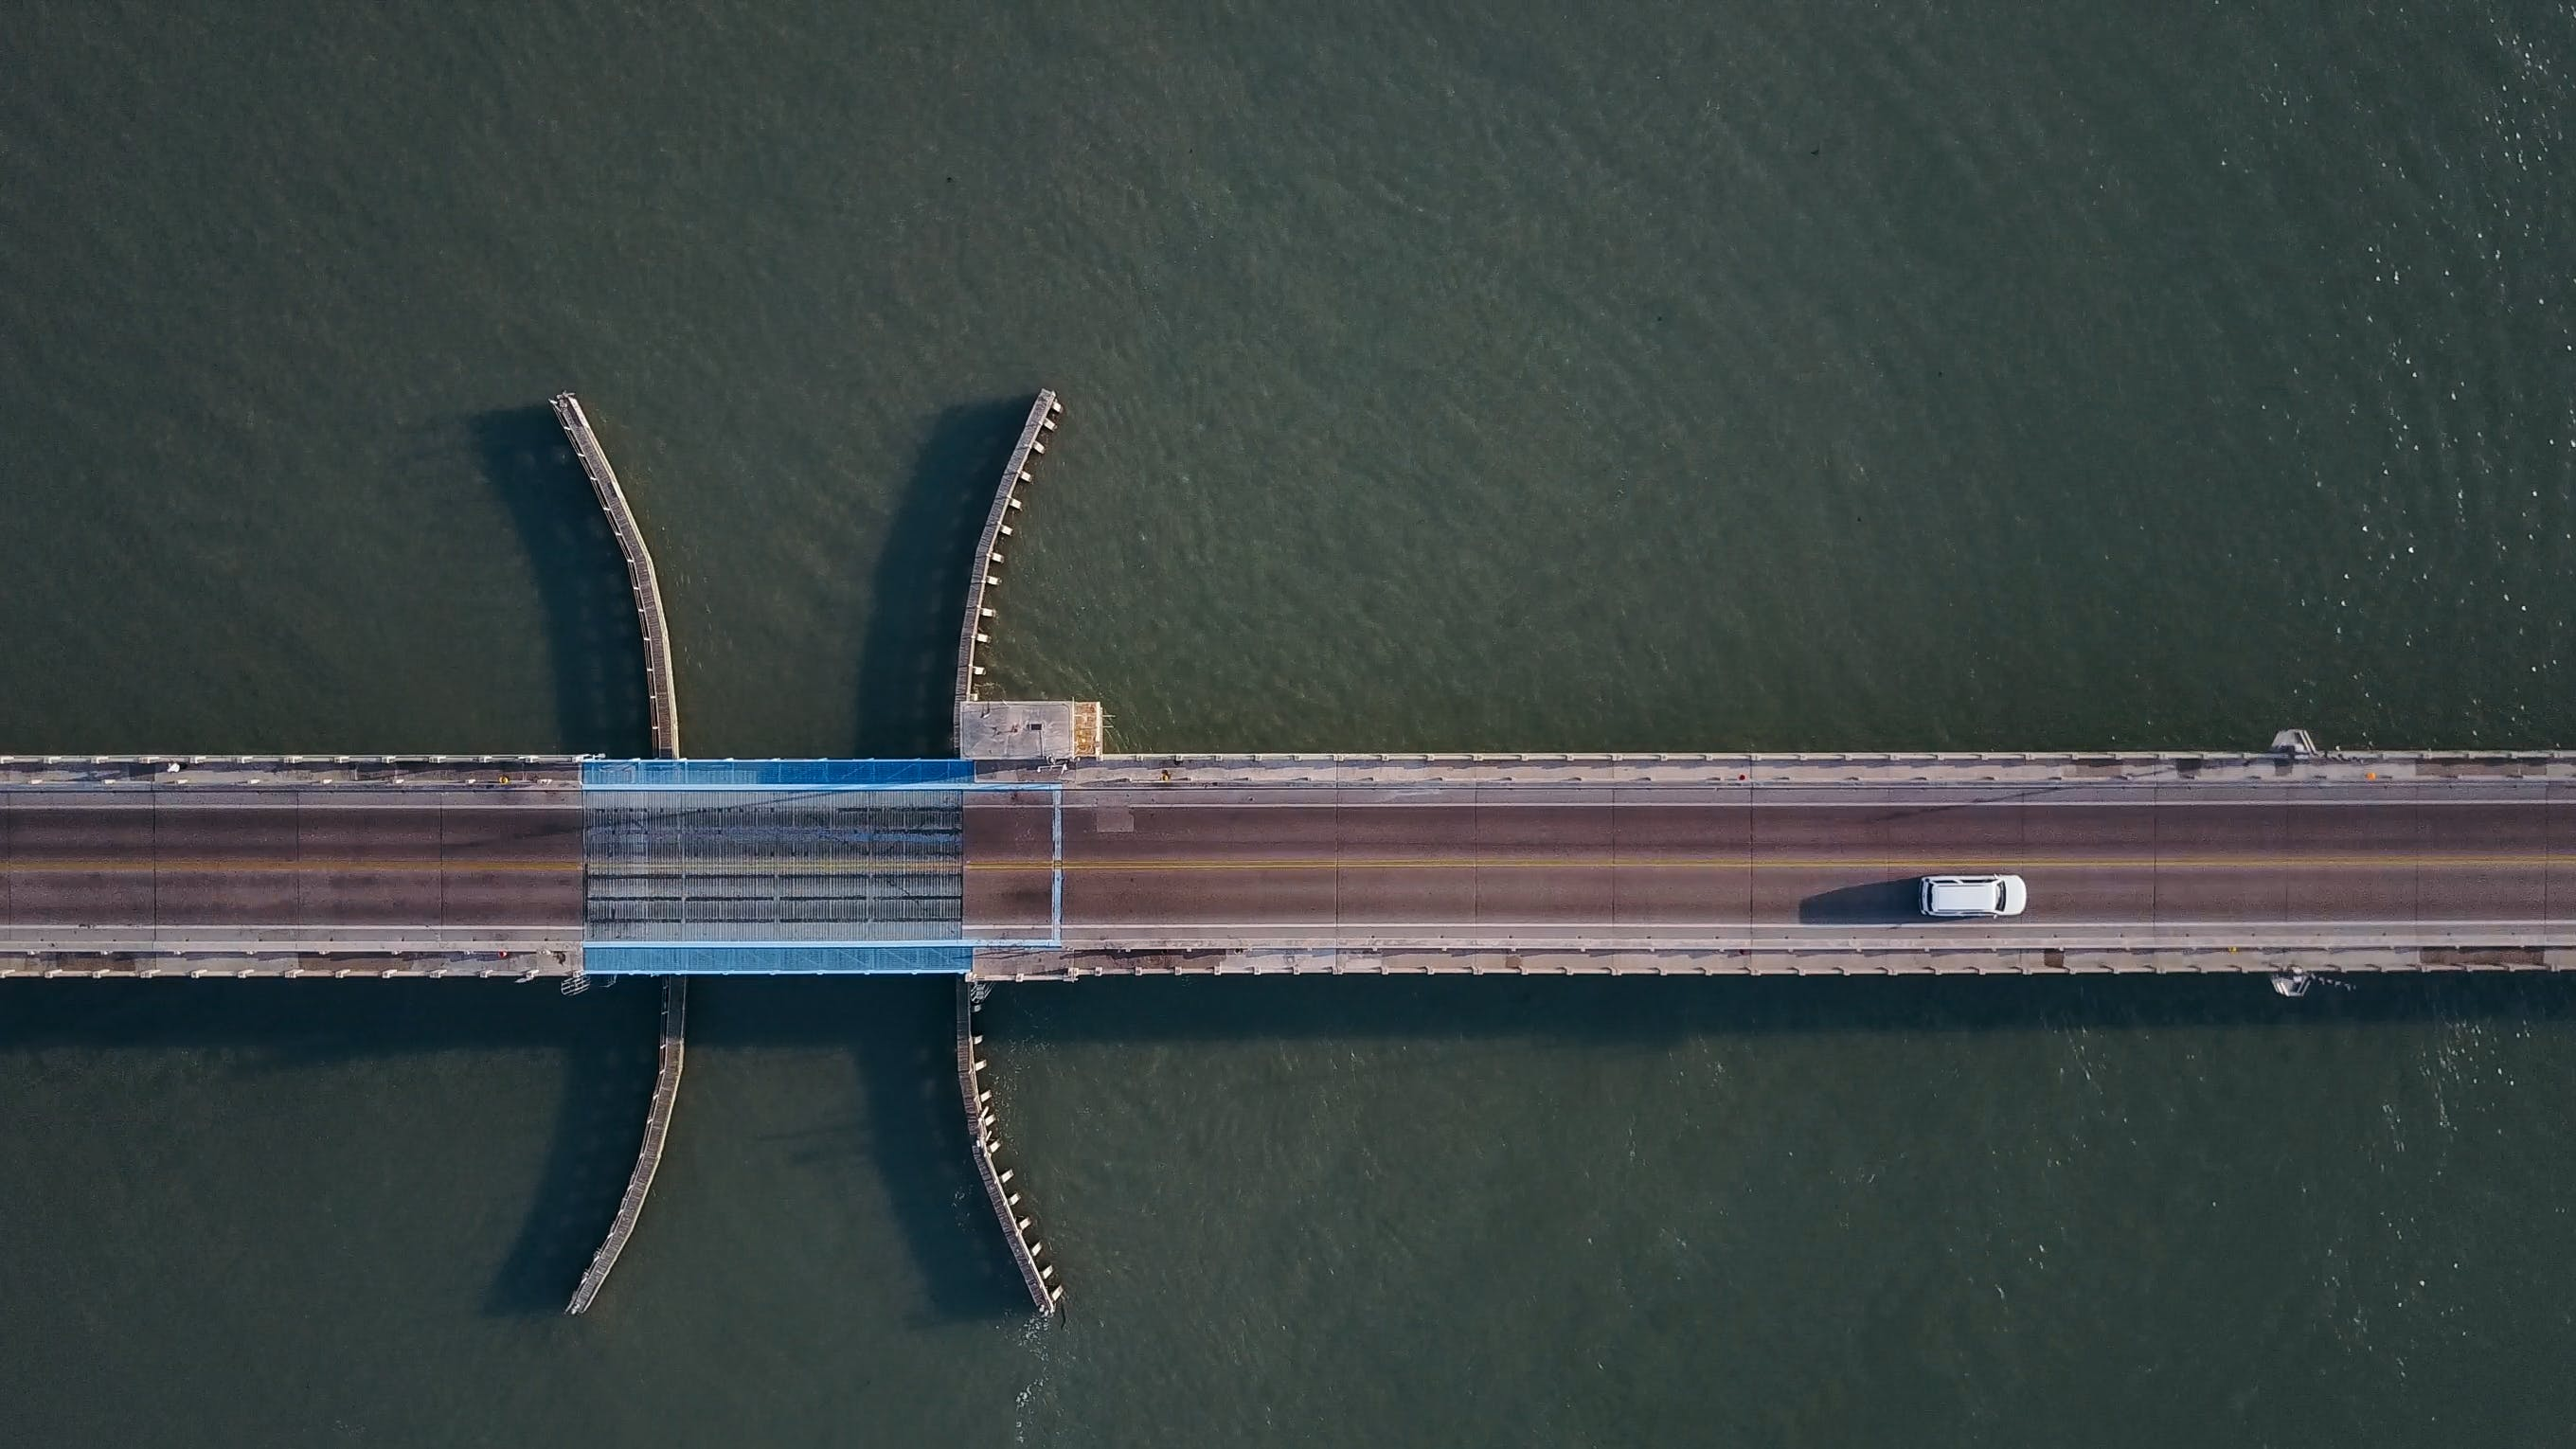 Free stock photo of bird's eye view, road, water, bridge